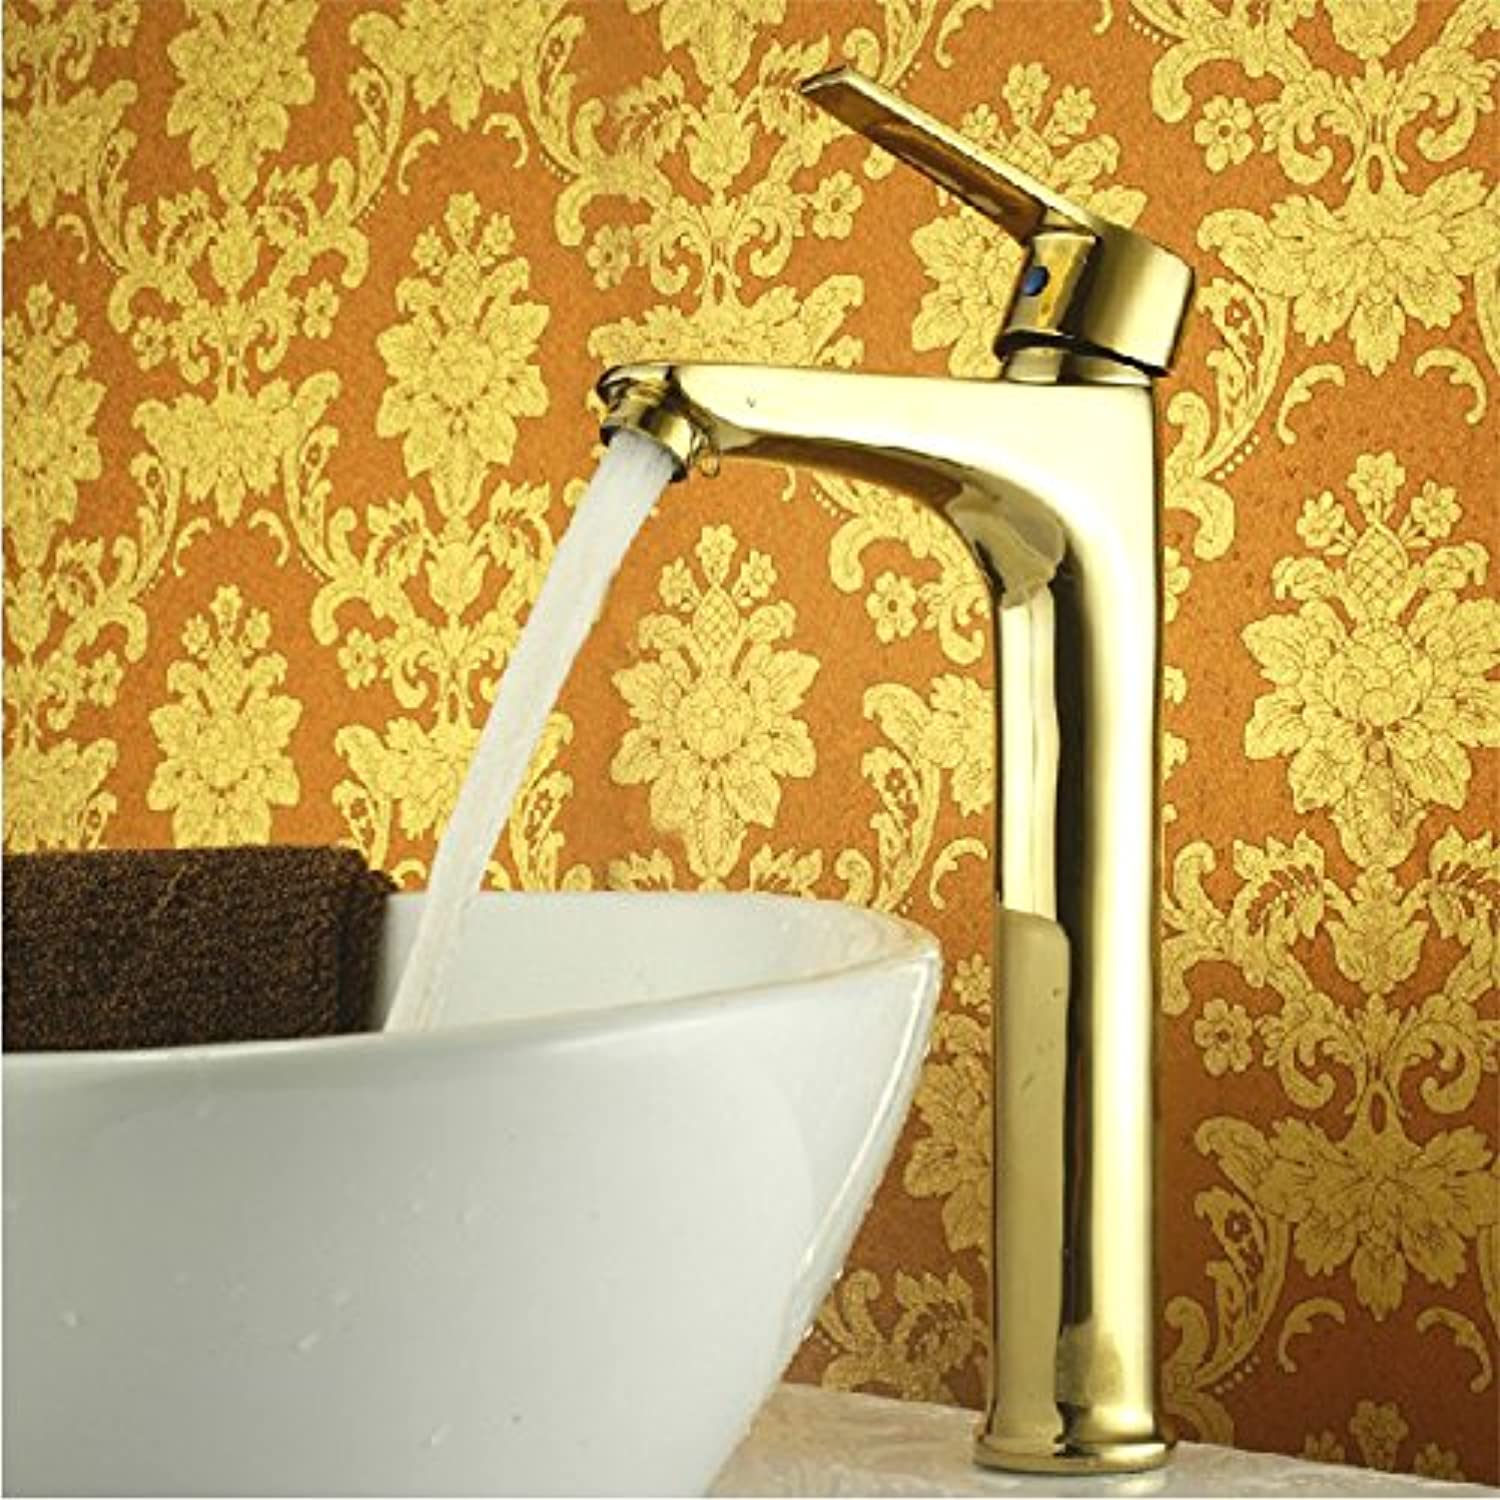 Maifeini Deluxe Brass Single Basin Mixer, gold-colord Washbasin Faucet,?Click Install On The Deck, Brass, Yellow